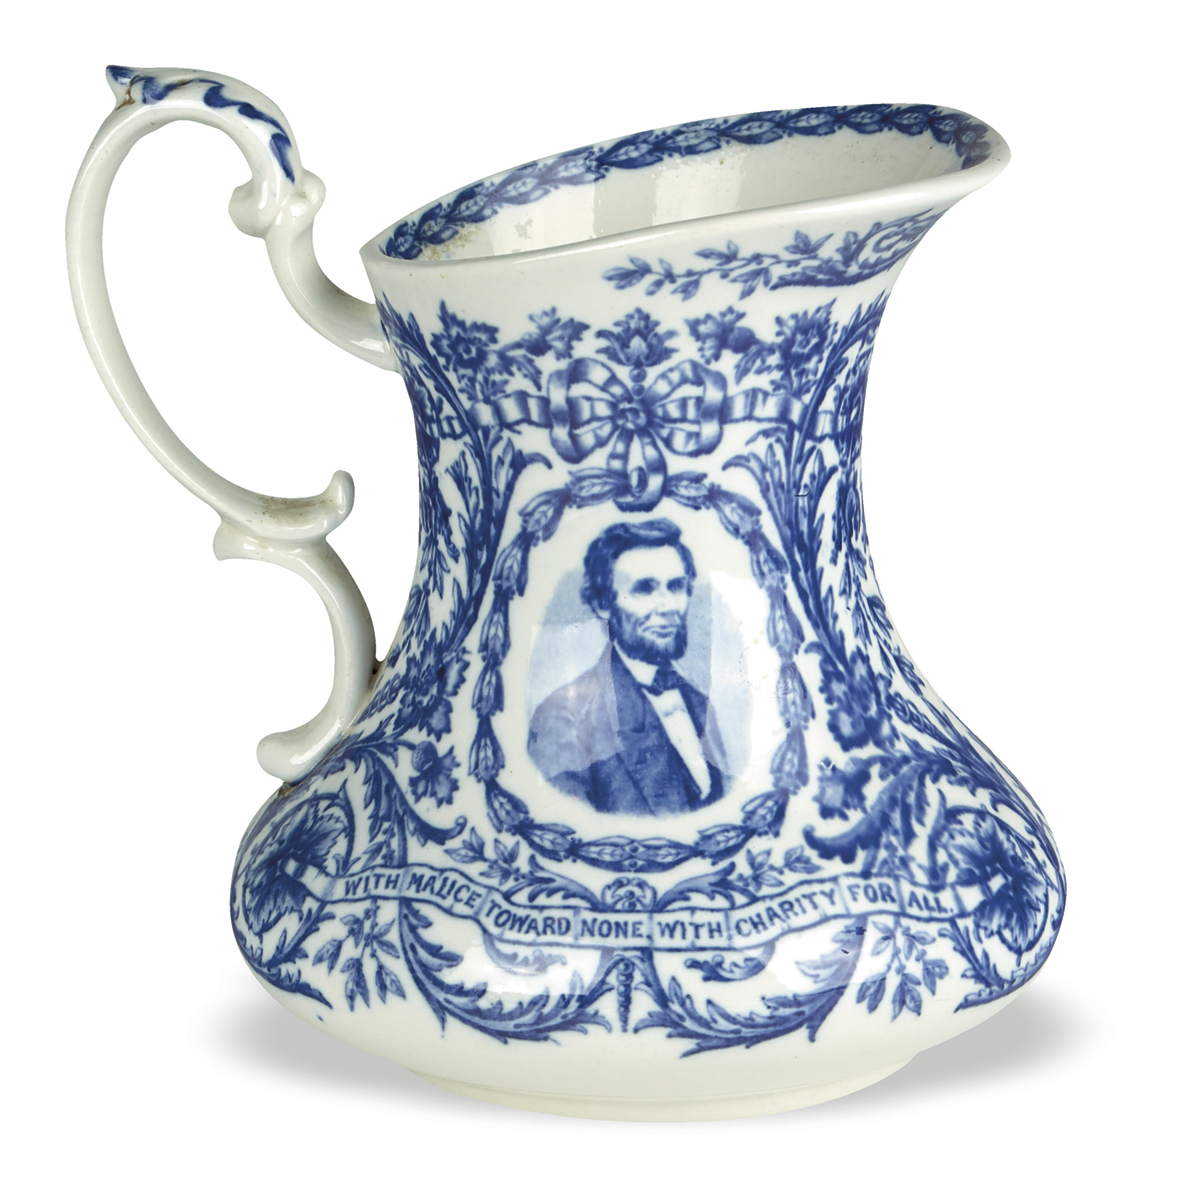 (REALIA)-Staffordshire-pitcher-depicting-Lincoln